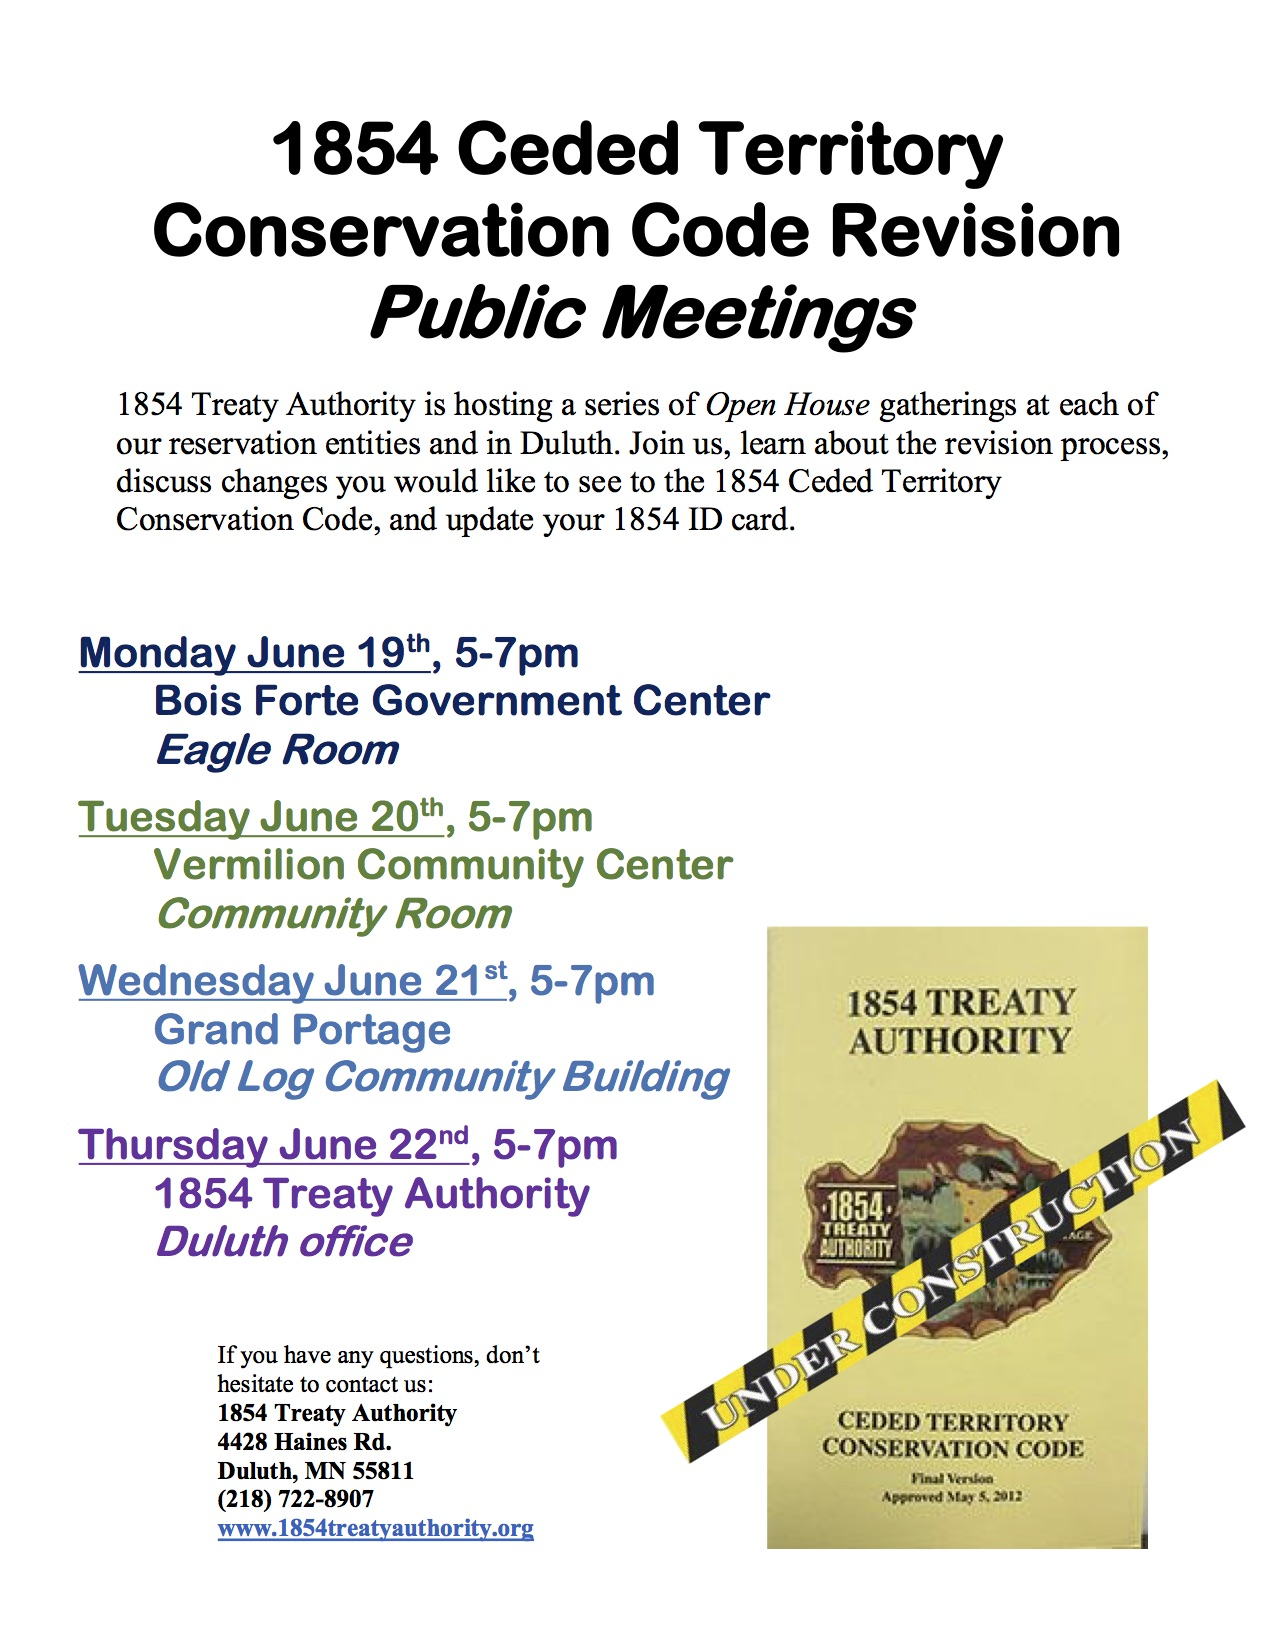 Conservation Code Revision Open House Meetings